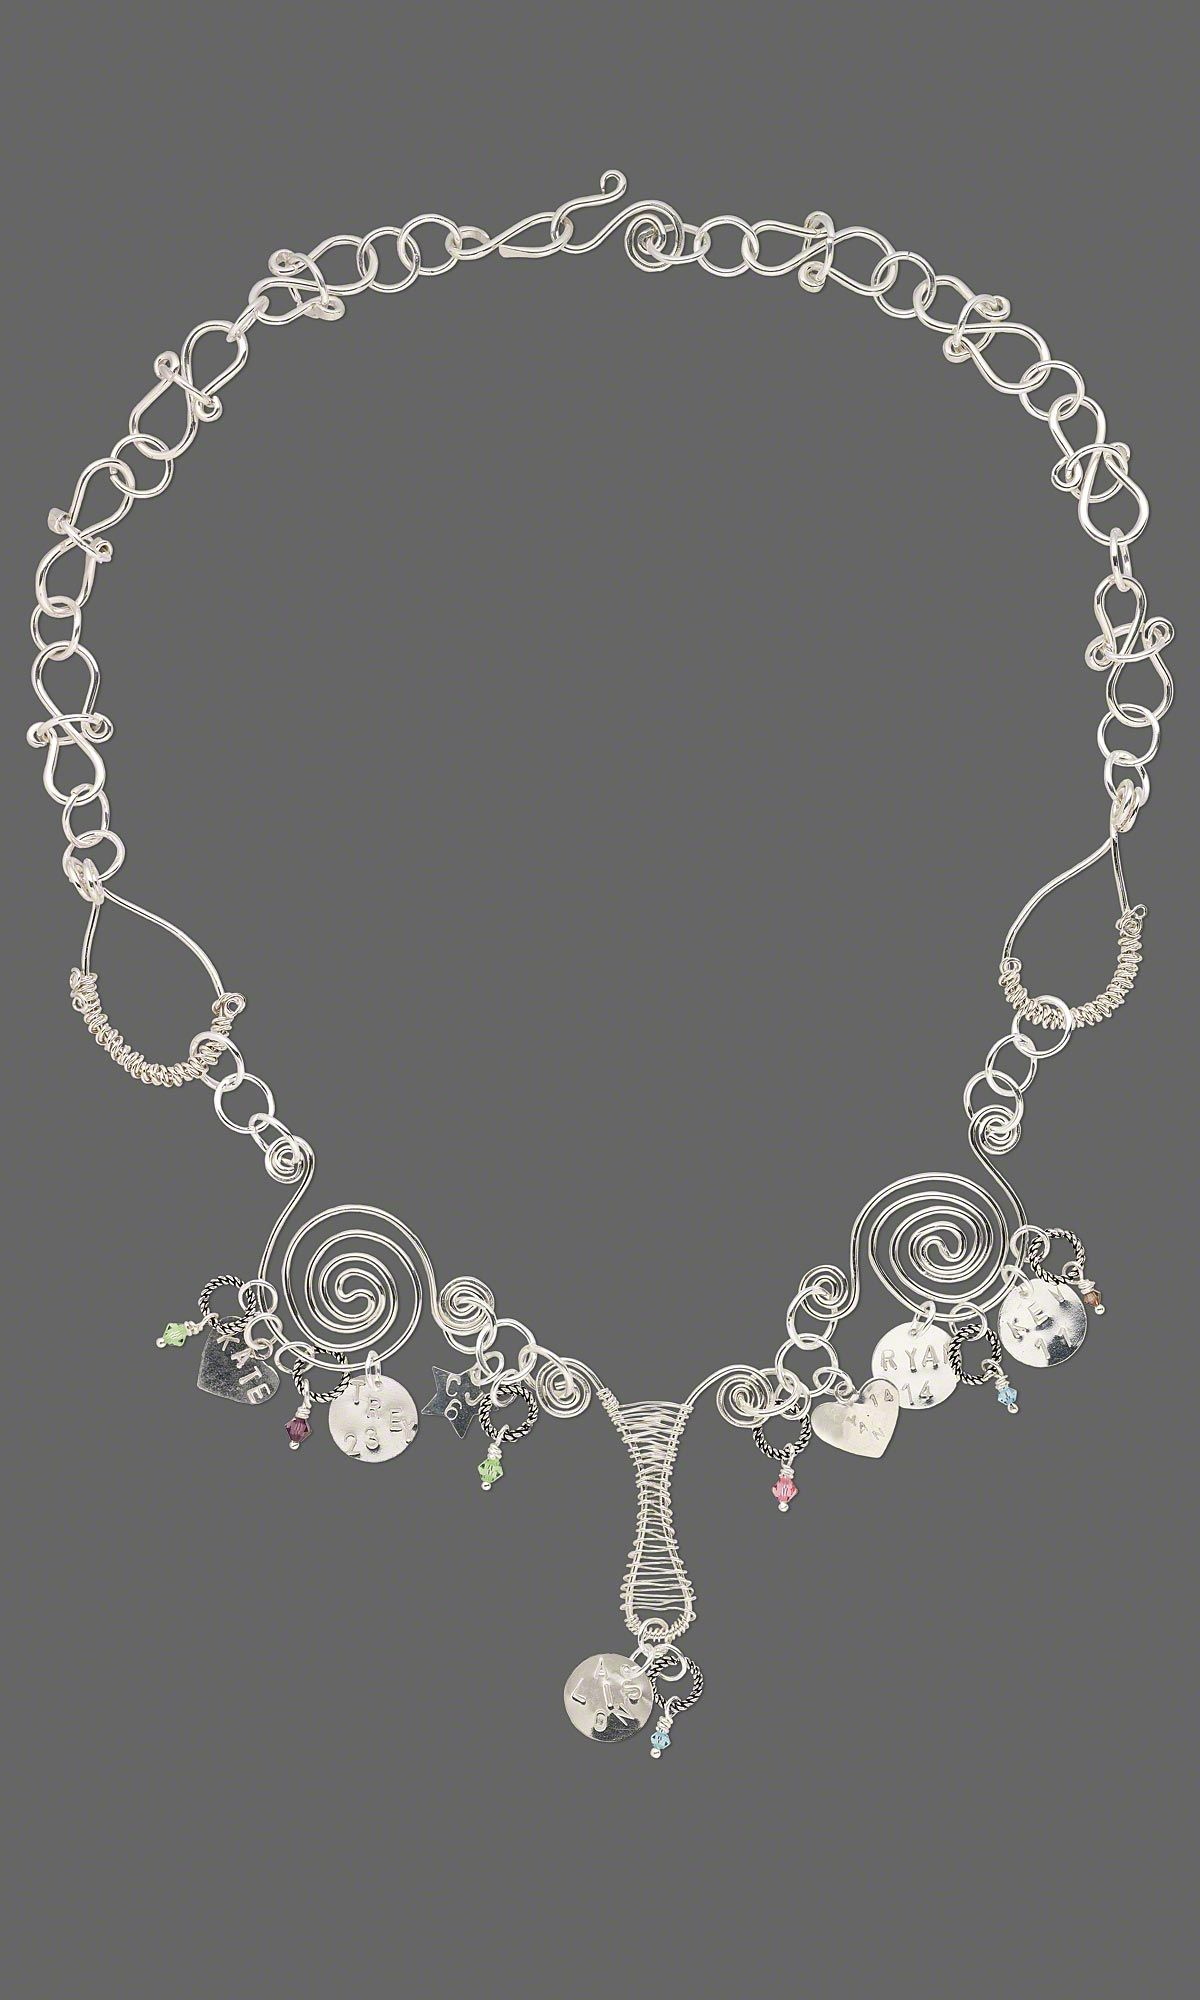 Single-Strand Necklace with Sterling Silver Wire, Beads and Charms ...